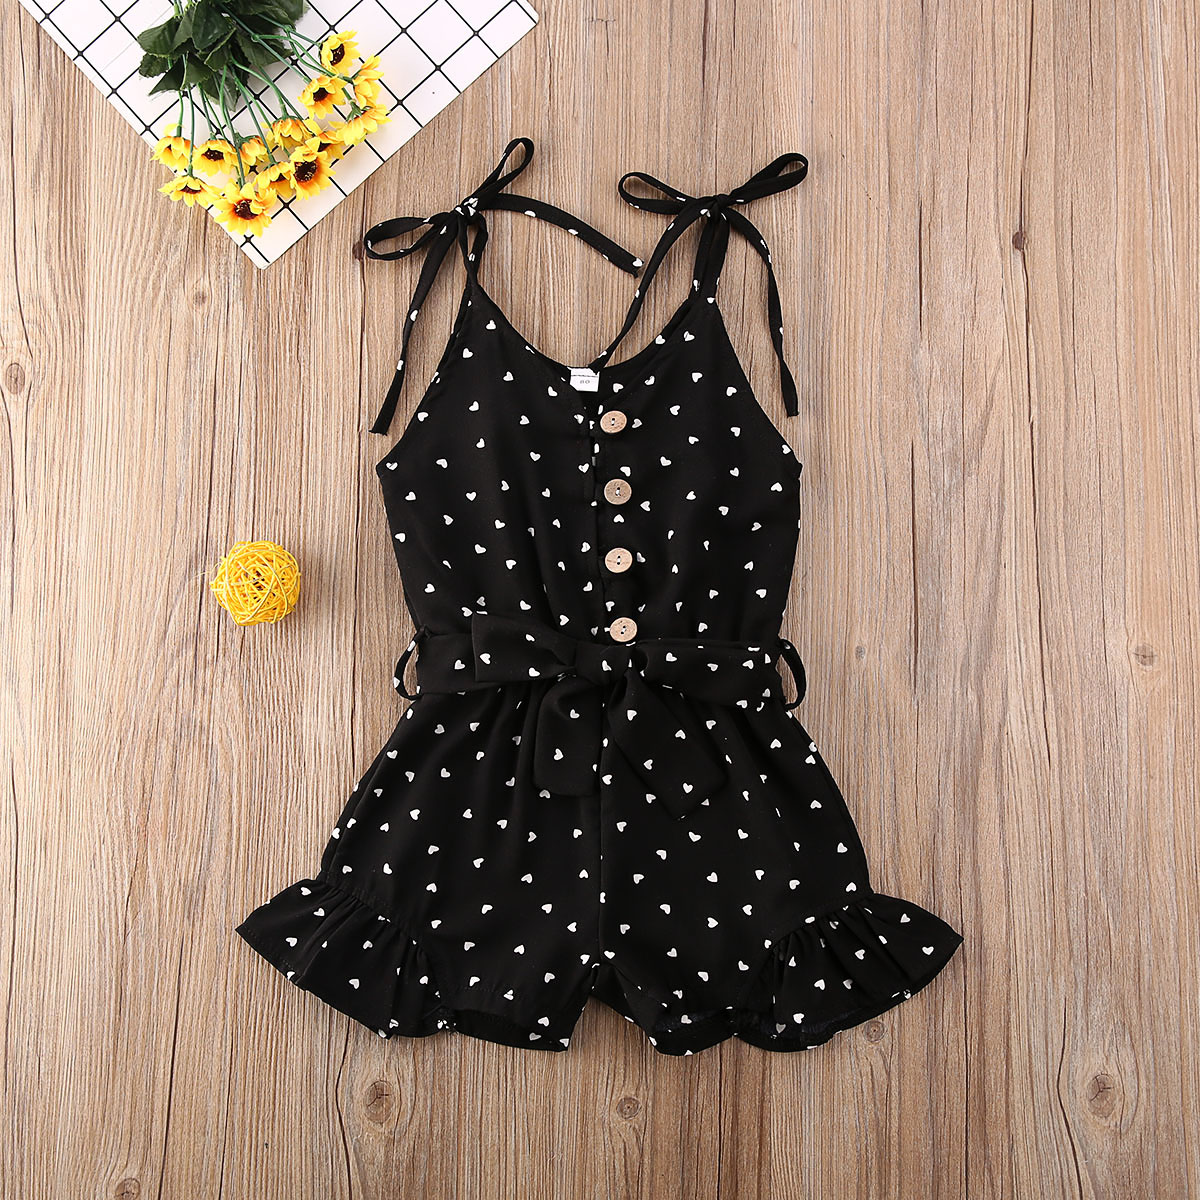 Pudcoco Toddler Baby Girl Clothes Love Peach Heart Print Strap Romper Jumpsuit One-Piece Outfit Cotton Clothes